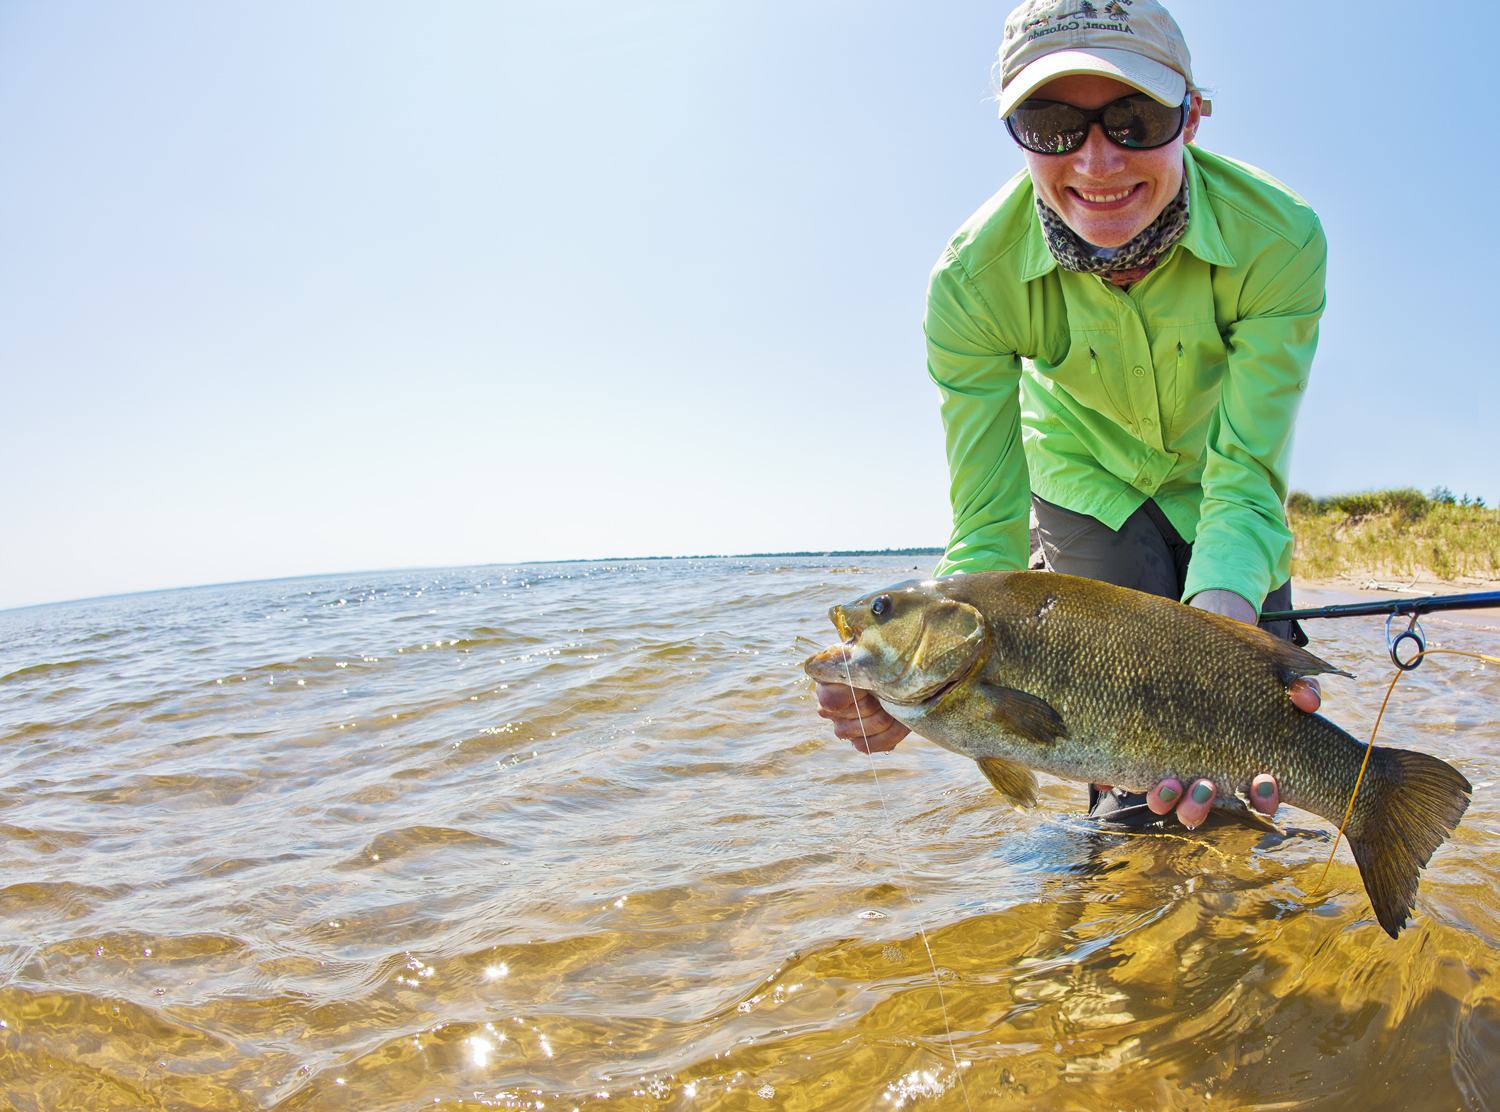 Laura with a nice sight-fished smallie out off the beach.